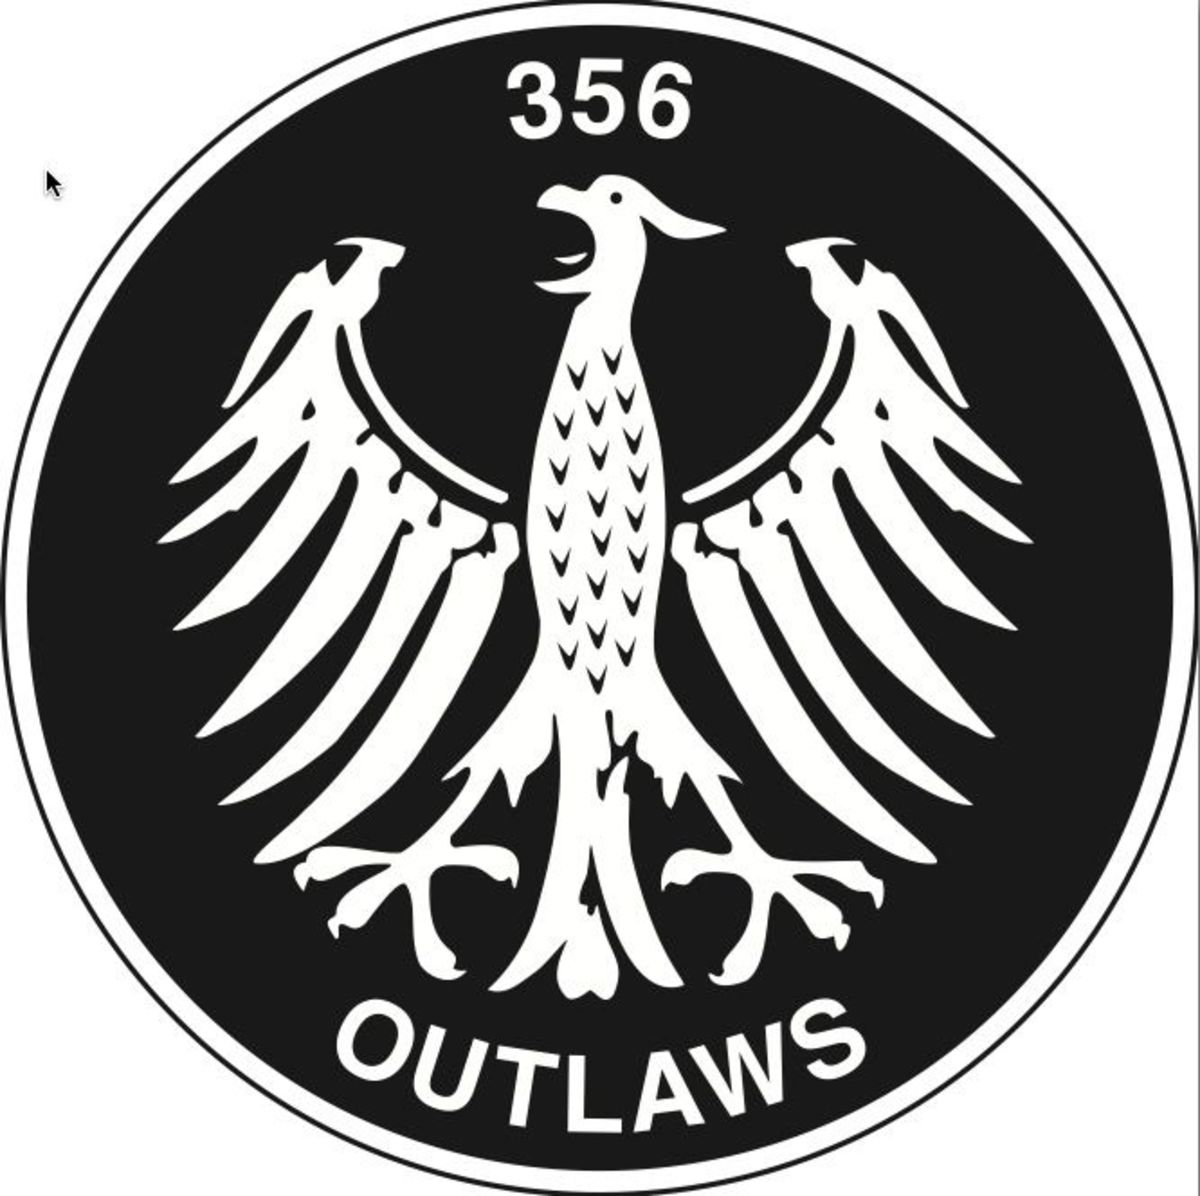 When Rod Emory was customizing a rare '53 Porsche coupe in the late 1980s, there was no class to display the car so he developed this little 'Outlaw' badge. Emory put these badges on his own cars and gave them to friends who were hot rodding their Porsches. Ever since, modified Porsches aren't called hot rods; they're Outlaws.